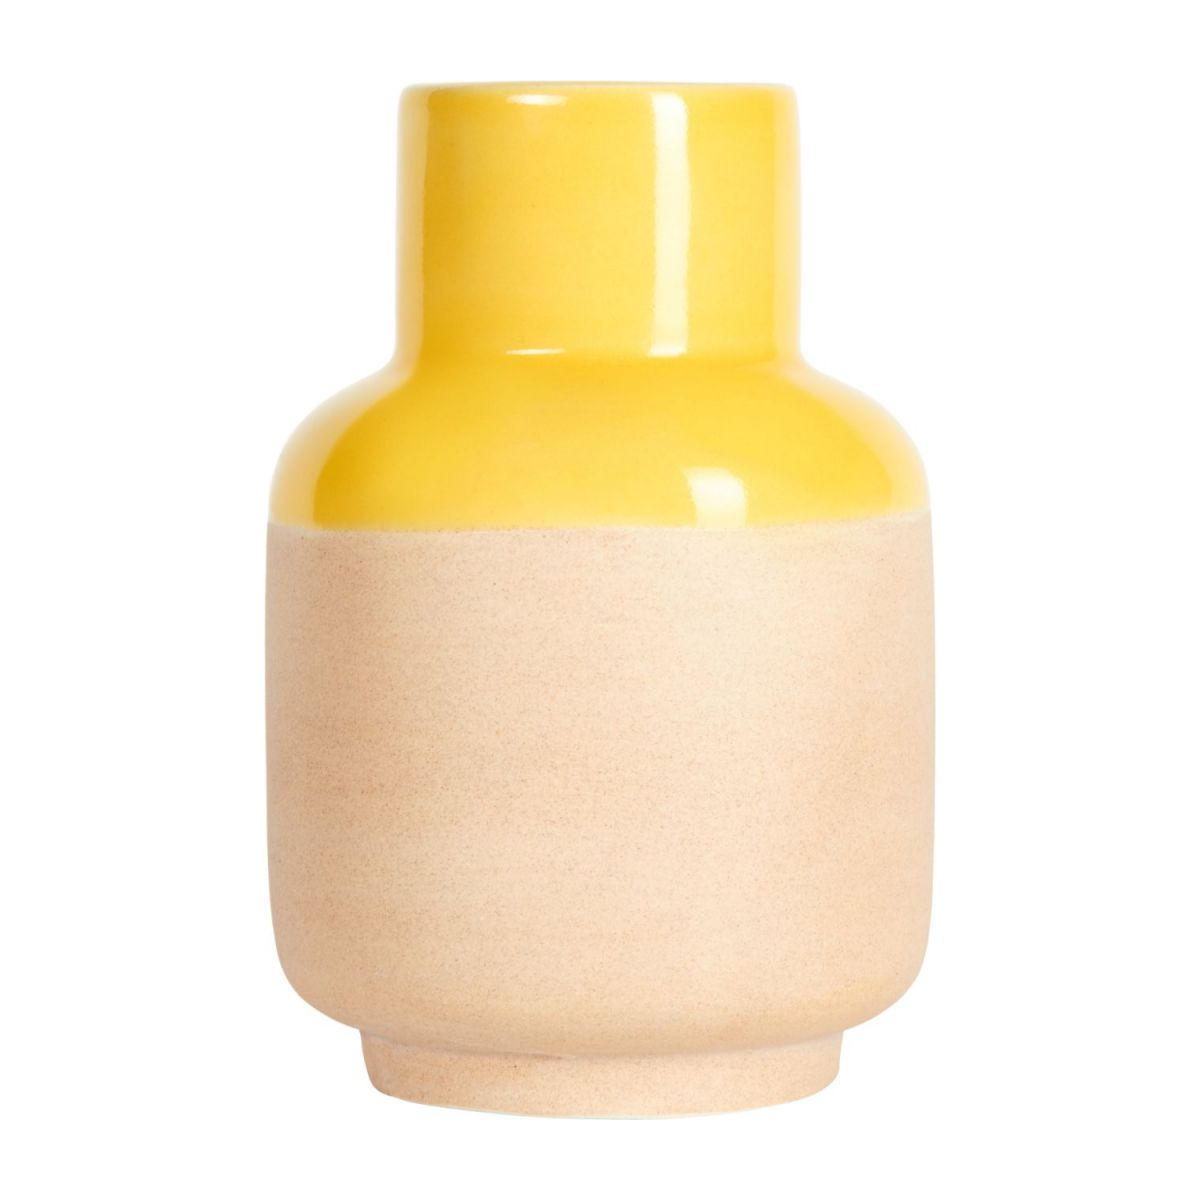 Vase made of earthenware 14cm, yellow n°2